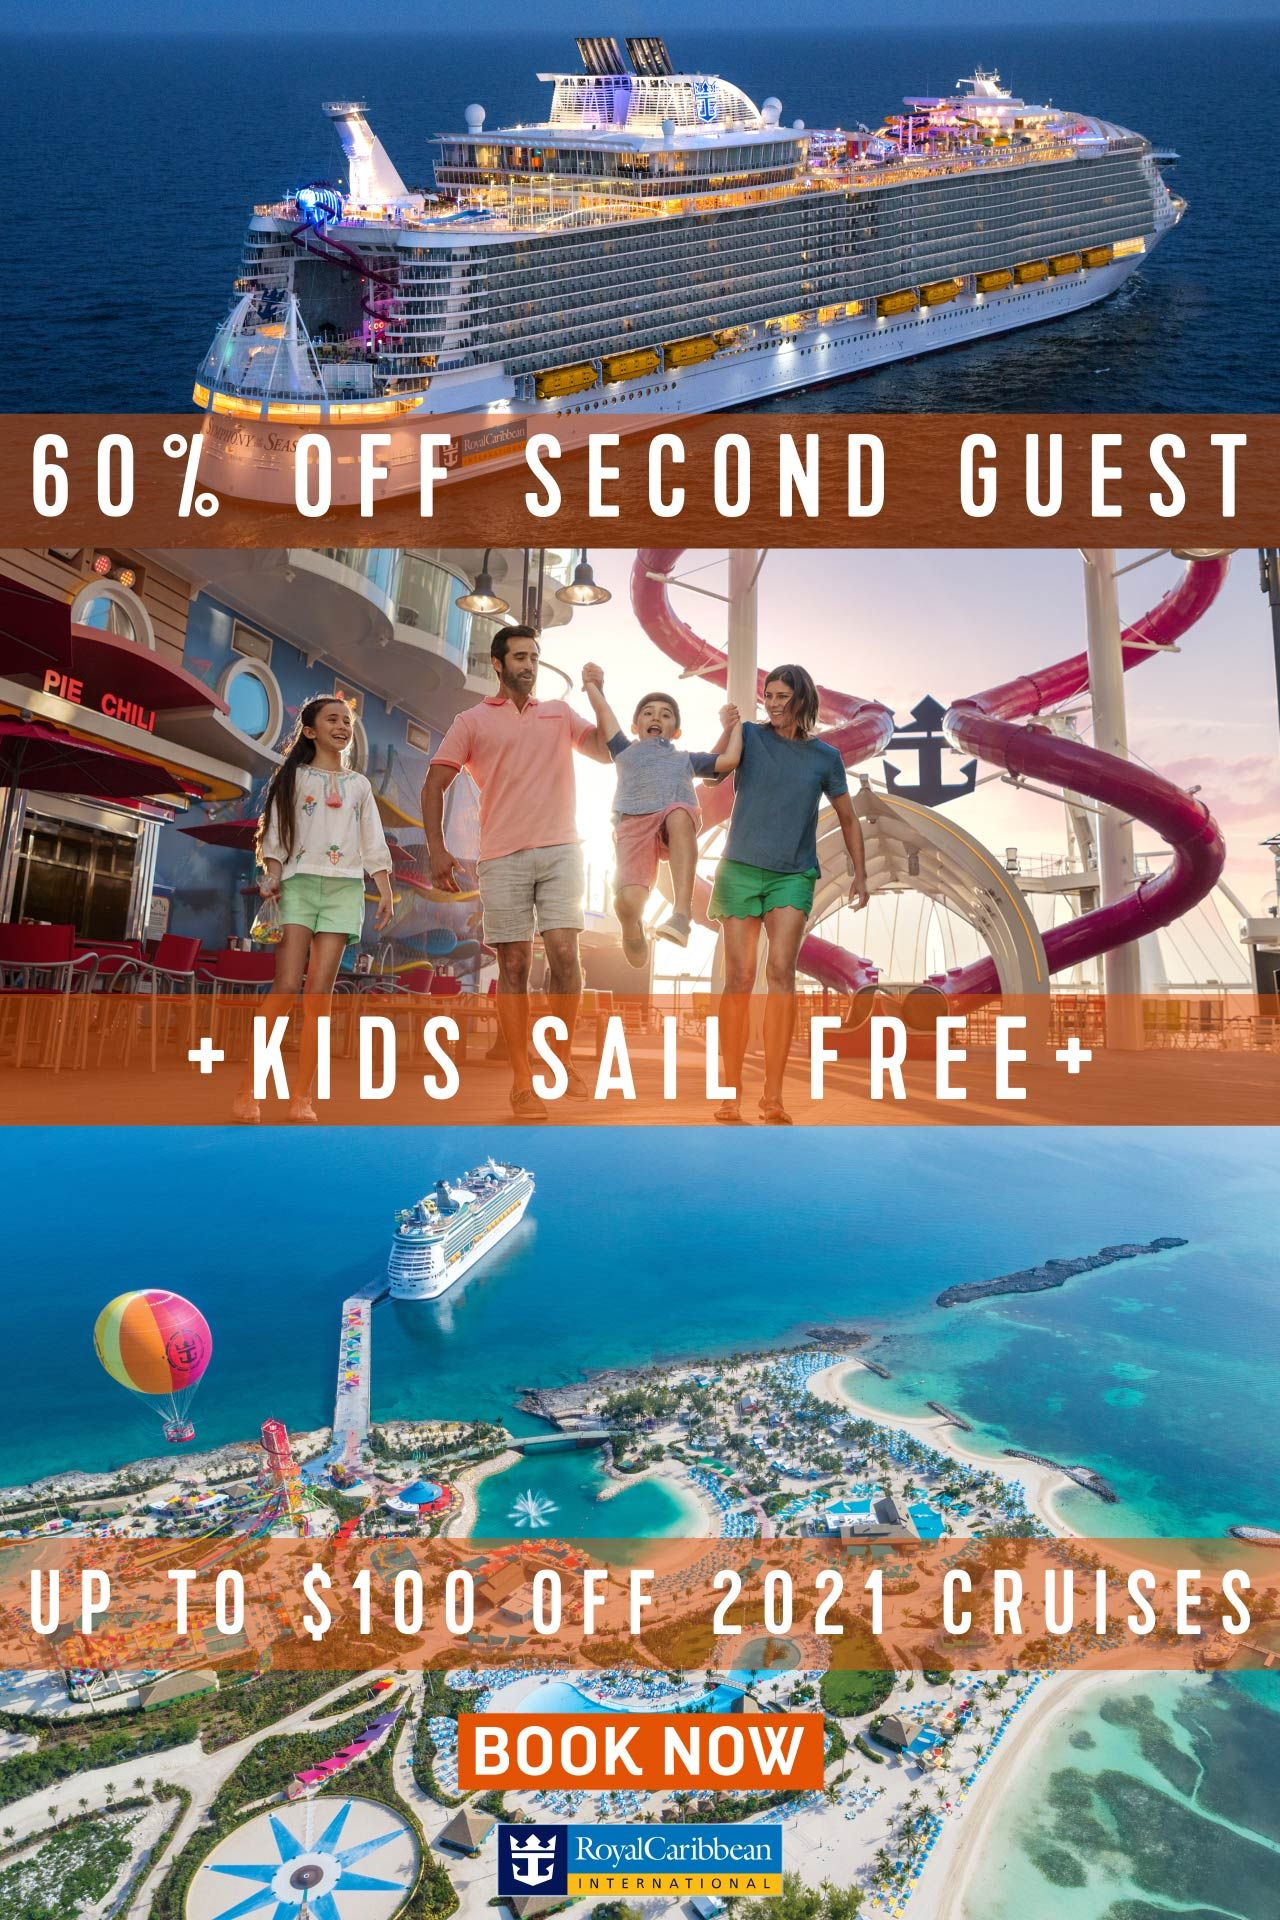 Book Now And Get 60 Off Your Second Guest Up To 100 Off In 2020 Royal Caribbean Cruise Lines Best Cruise Deals Best Cruise Lines